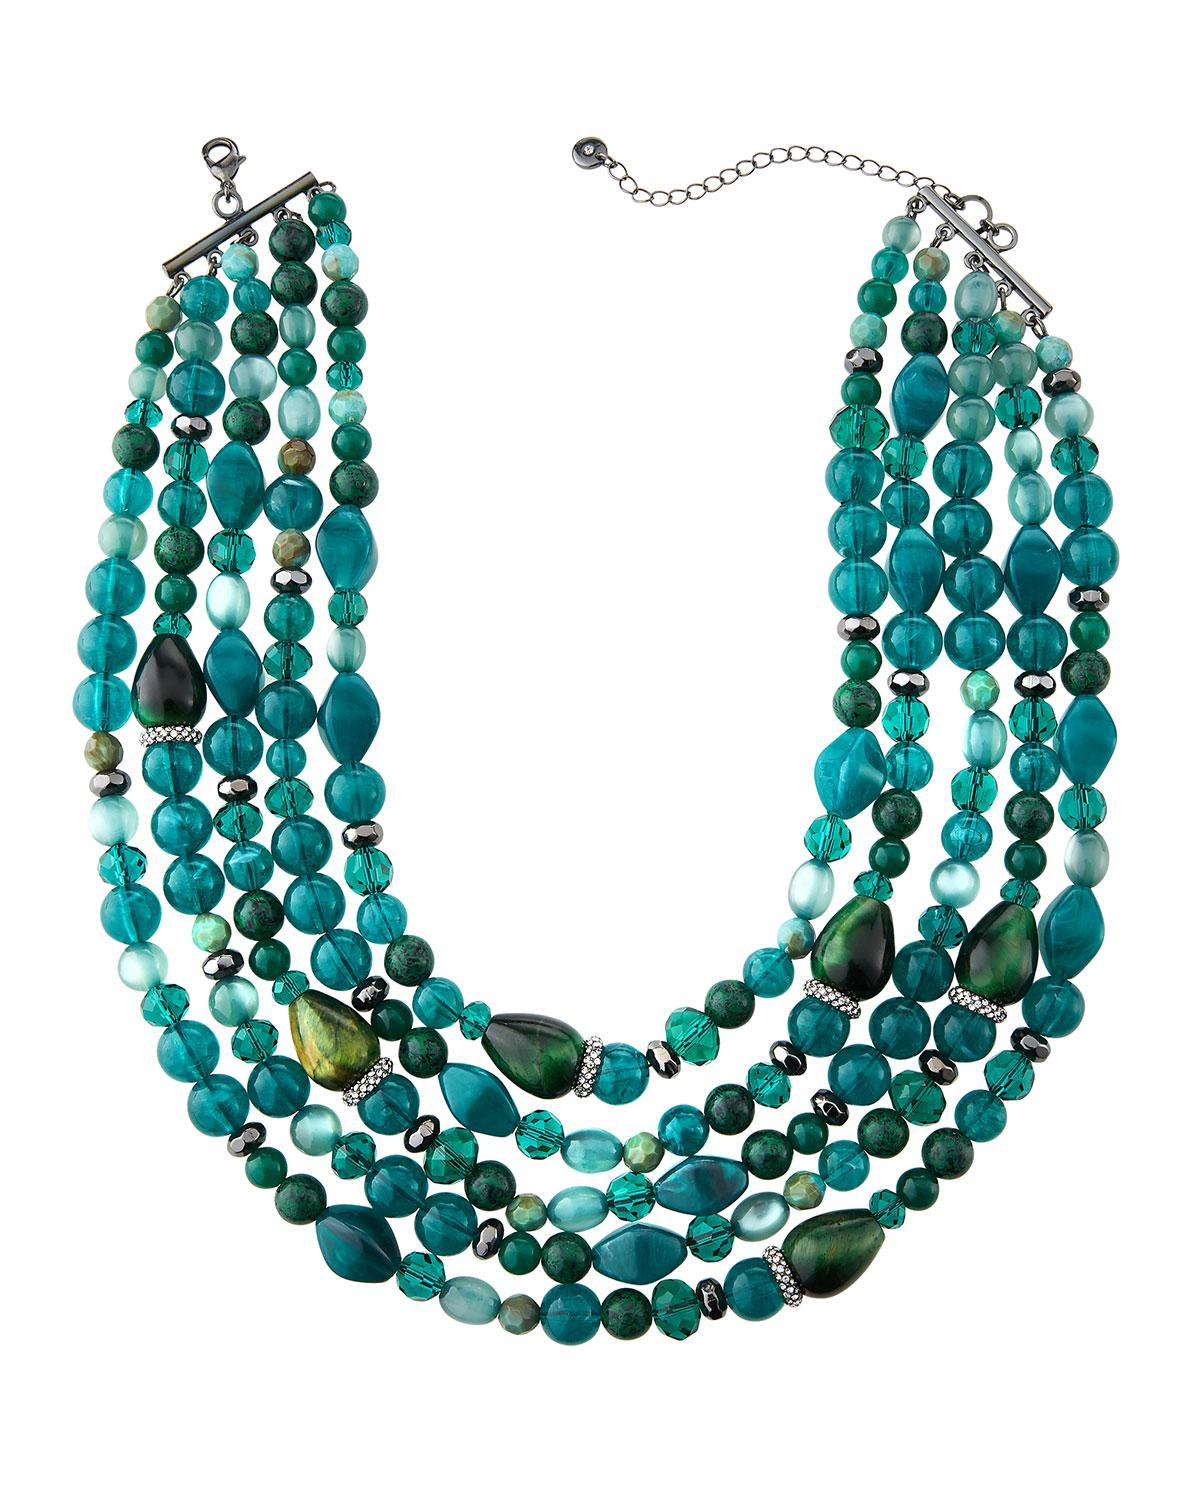 Lydell Nyc Long Single-Strand Beaded Necklace cZTDk